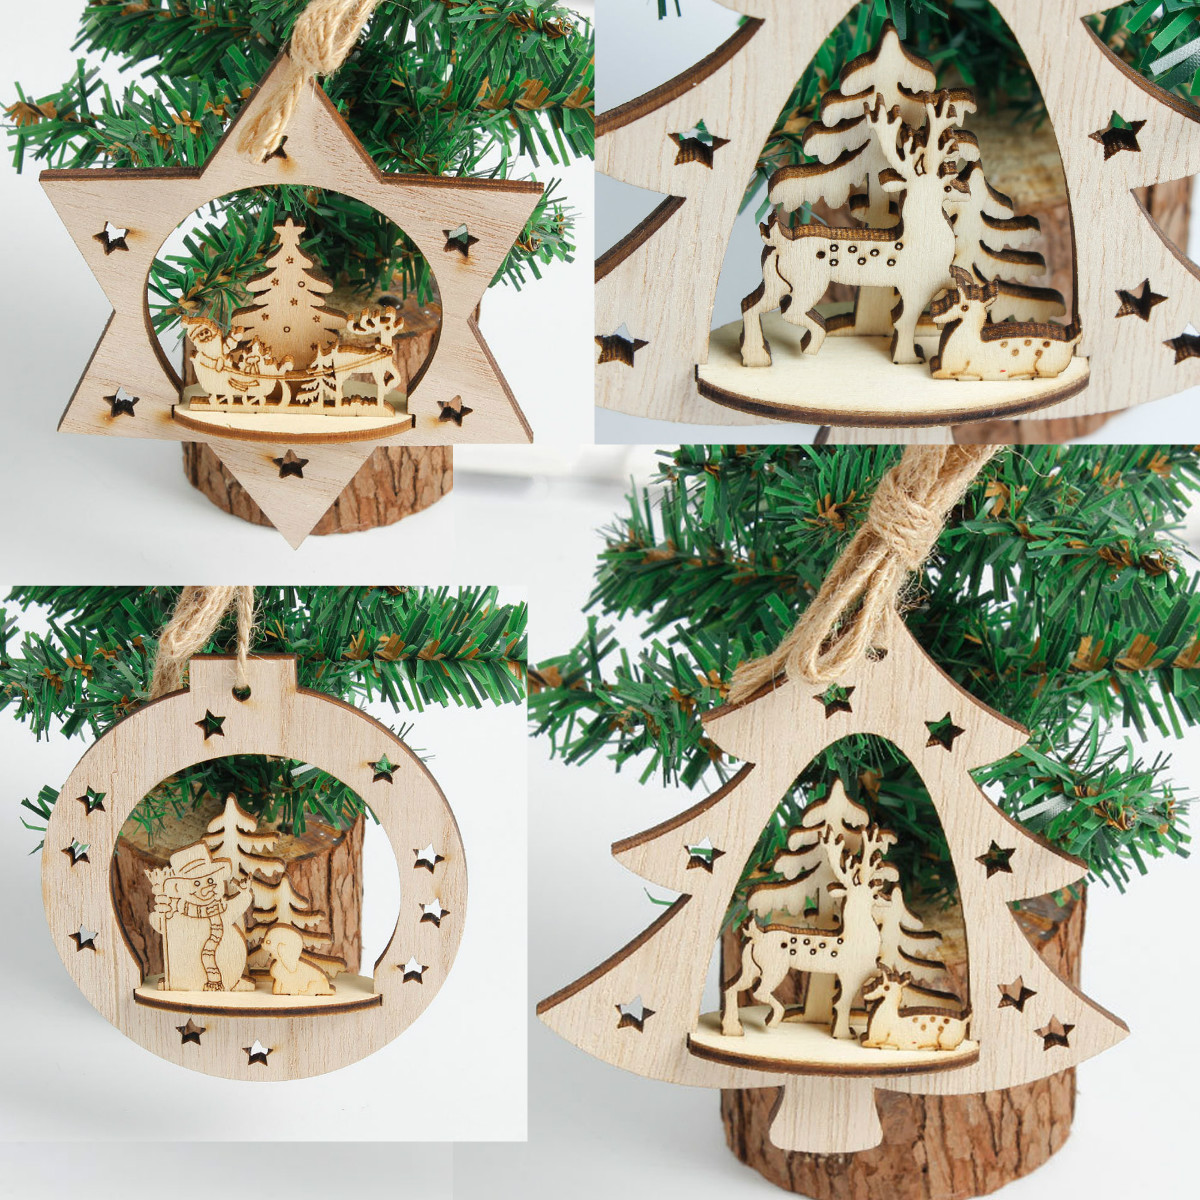 Children Christmas Tree Decorations.Us 1 97 29 Off 2019 Christmas Tree Decoration 3d Wooden Santa Elk Hanging Ornament For Home Party Decor For Children Christmas Gifts In Pendant